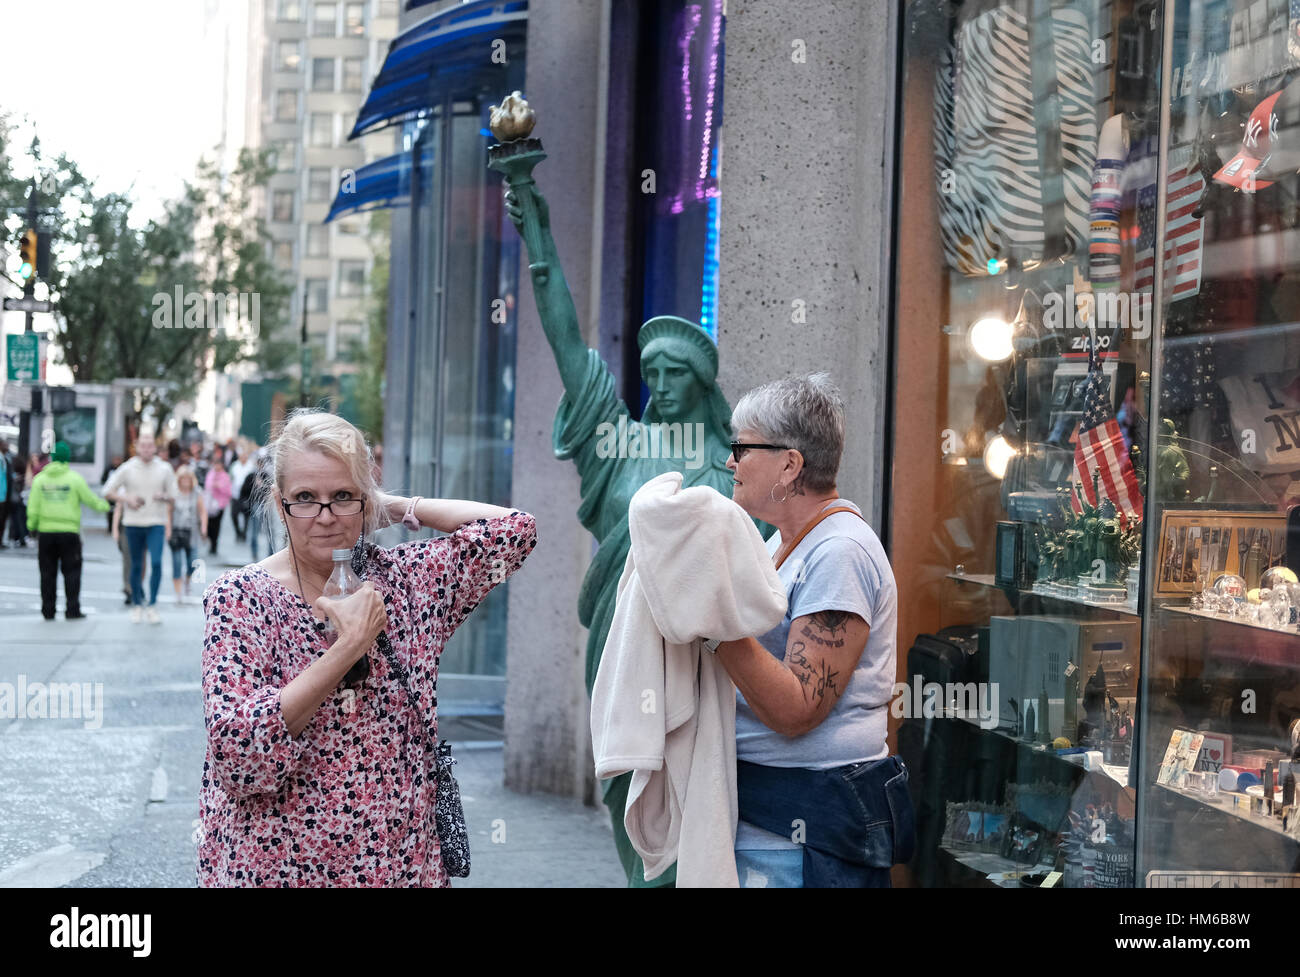 Senior women seen outside a souvenir shop in central New York City, looking at the camera. - Stock Image